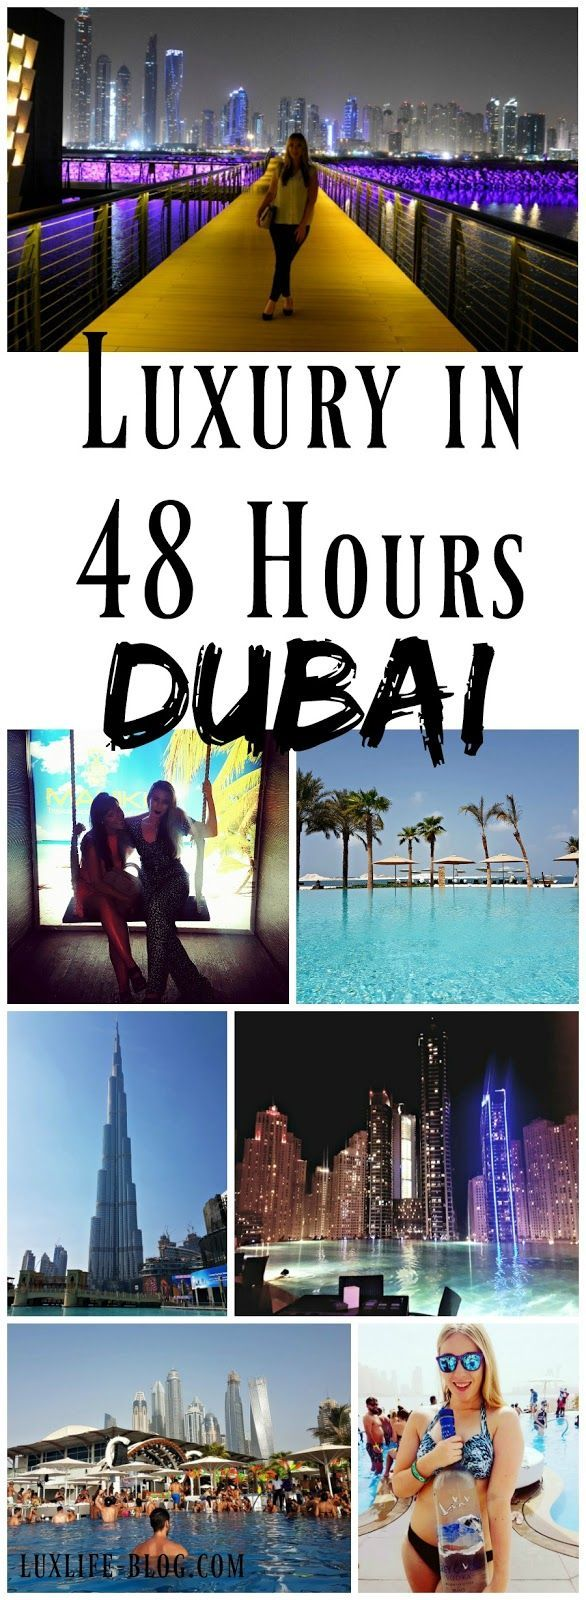 *Pin For Later* The best tips for the ultimate luxury 48 hours in Dubai! Take a look to find out the best hotels, restaurants, beach clubs, bars, and nightclubs!